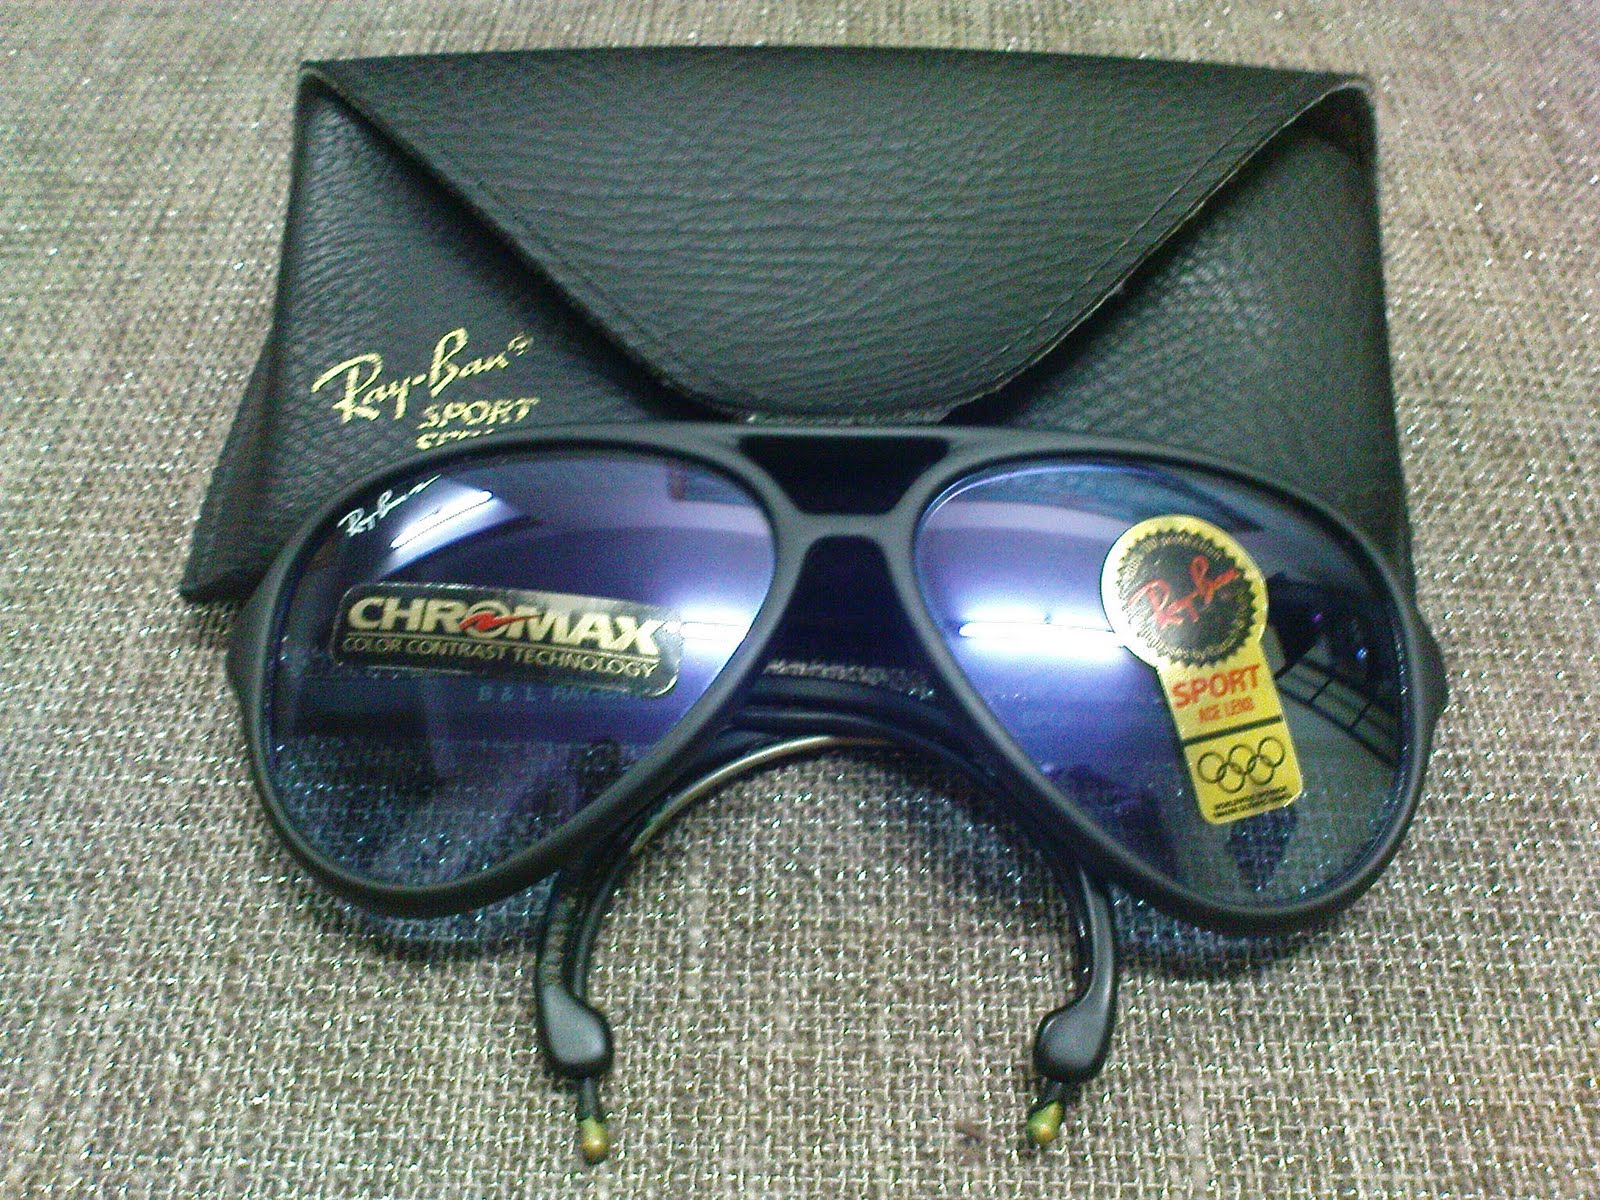 839f59a6e34 Vintage Bausch   Lomb Rayban Sunglasses  (SOLD)NOS Ray Ban Sport Series 4